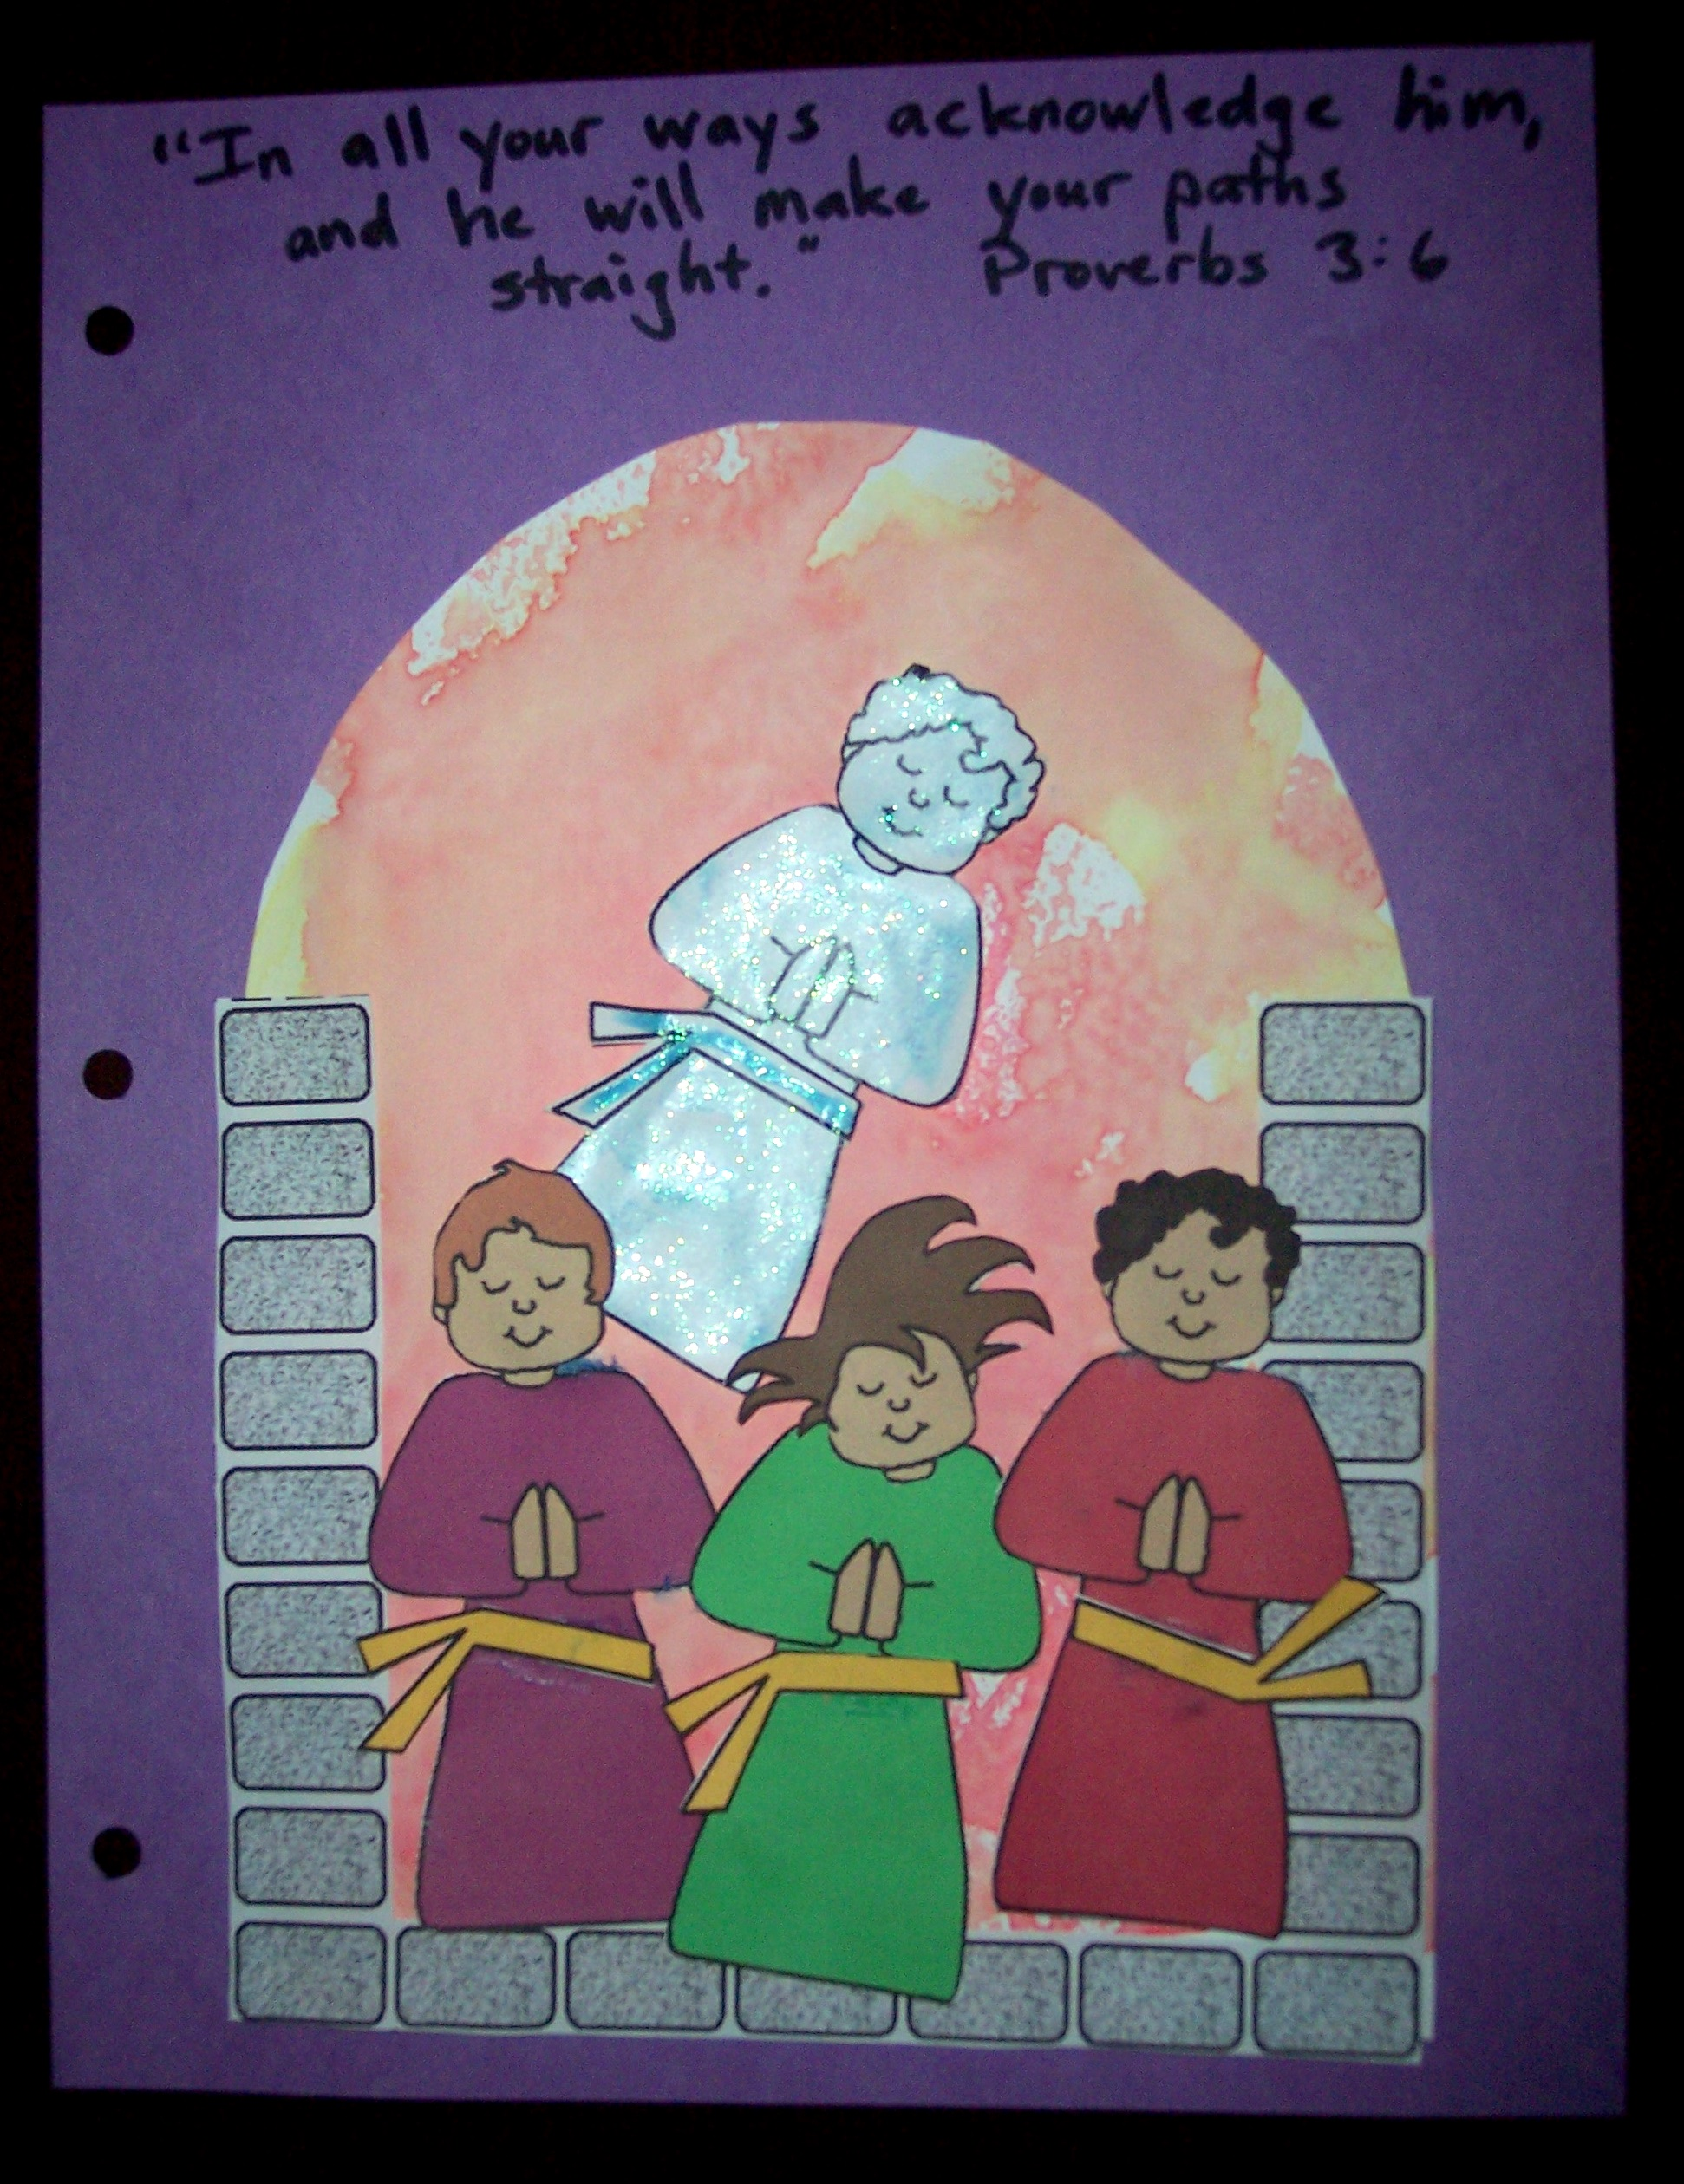 Meshach Holiday Coloring Pages Shadrach And Abednego Page In The Fiery Furnace His